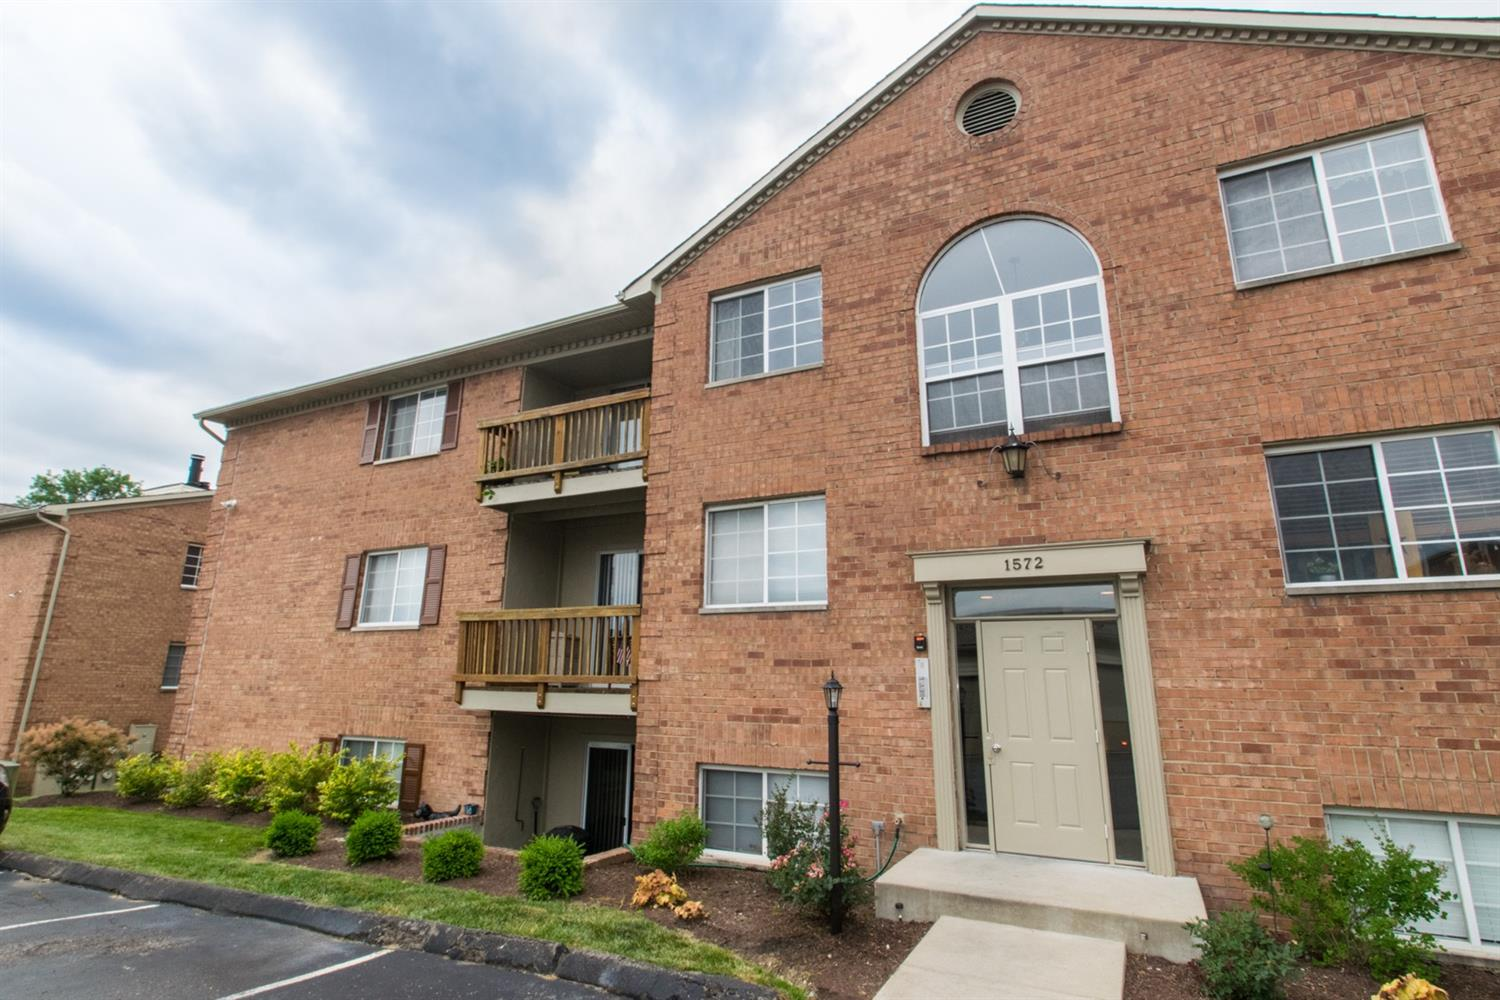 Property for sale at 1572 Gelhot Drive Unit: 125, Fairfield,  Ohio 45014